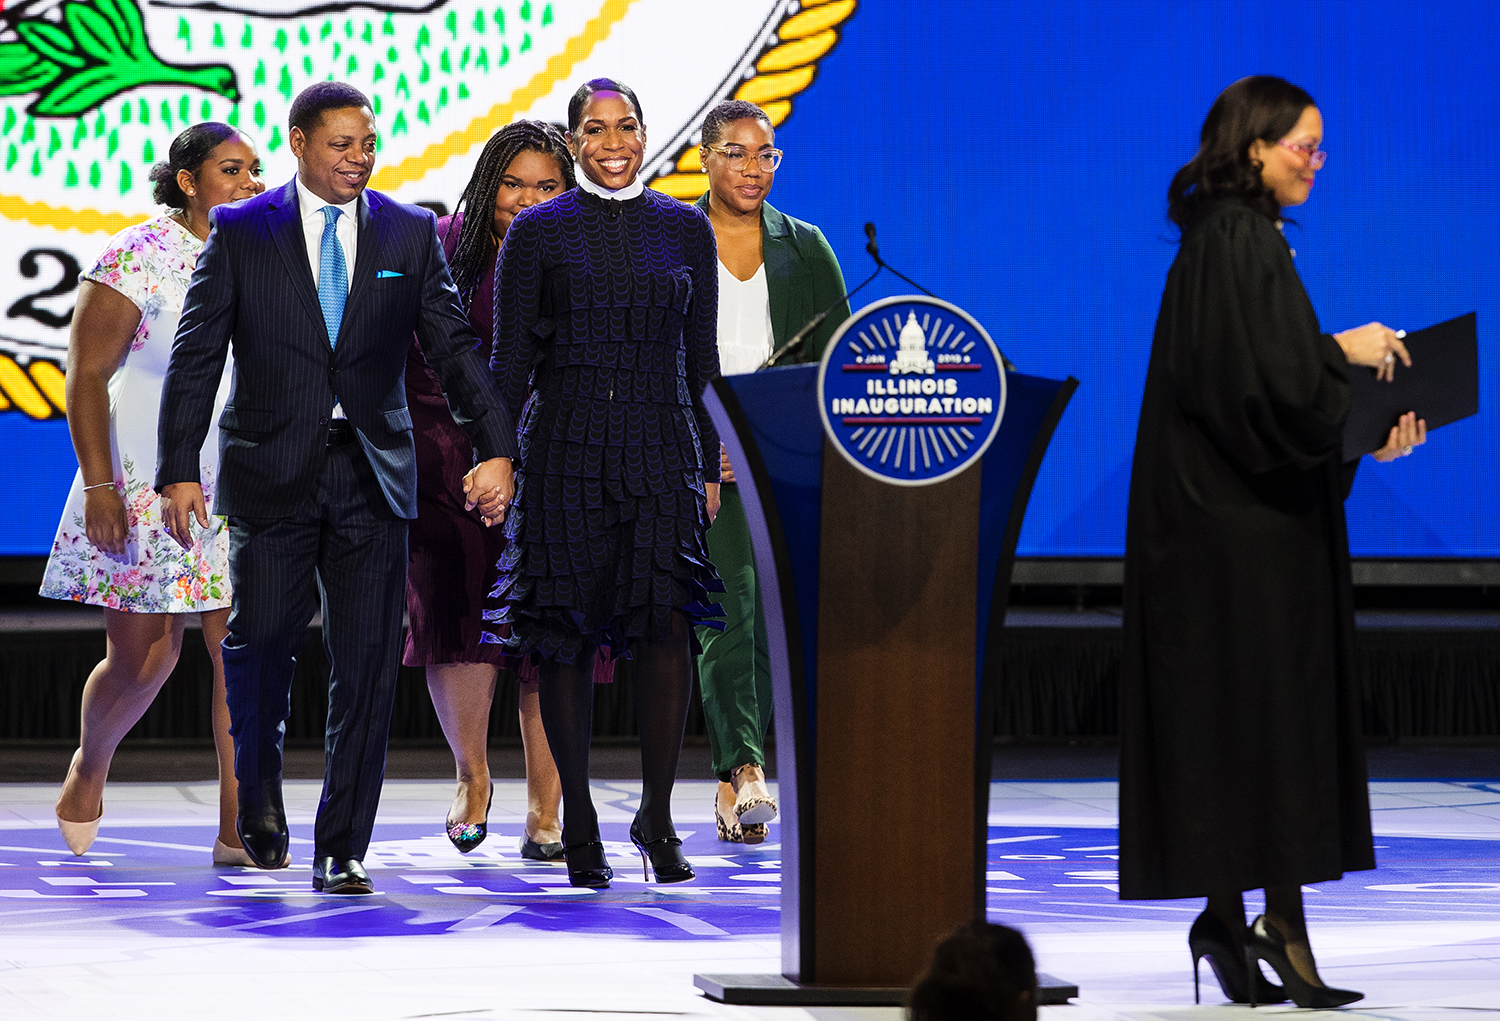 Lt. Gov.-elect Juliana Stratton takes the stage to take the oath of office with her fiance Bryan Echols and daughters Ryan, Tyler and Cassidy during the Illinois Inaugural Ceremony at the Bank of Springfield Center Monday, Jan. 14, 2019. [Ted Schurter/The State Journal-Register]